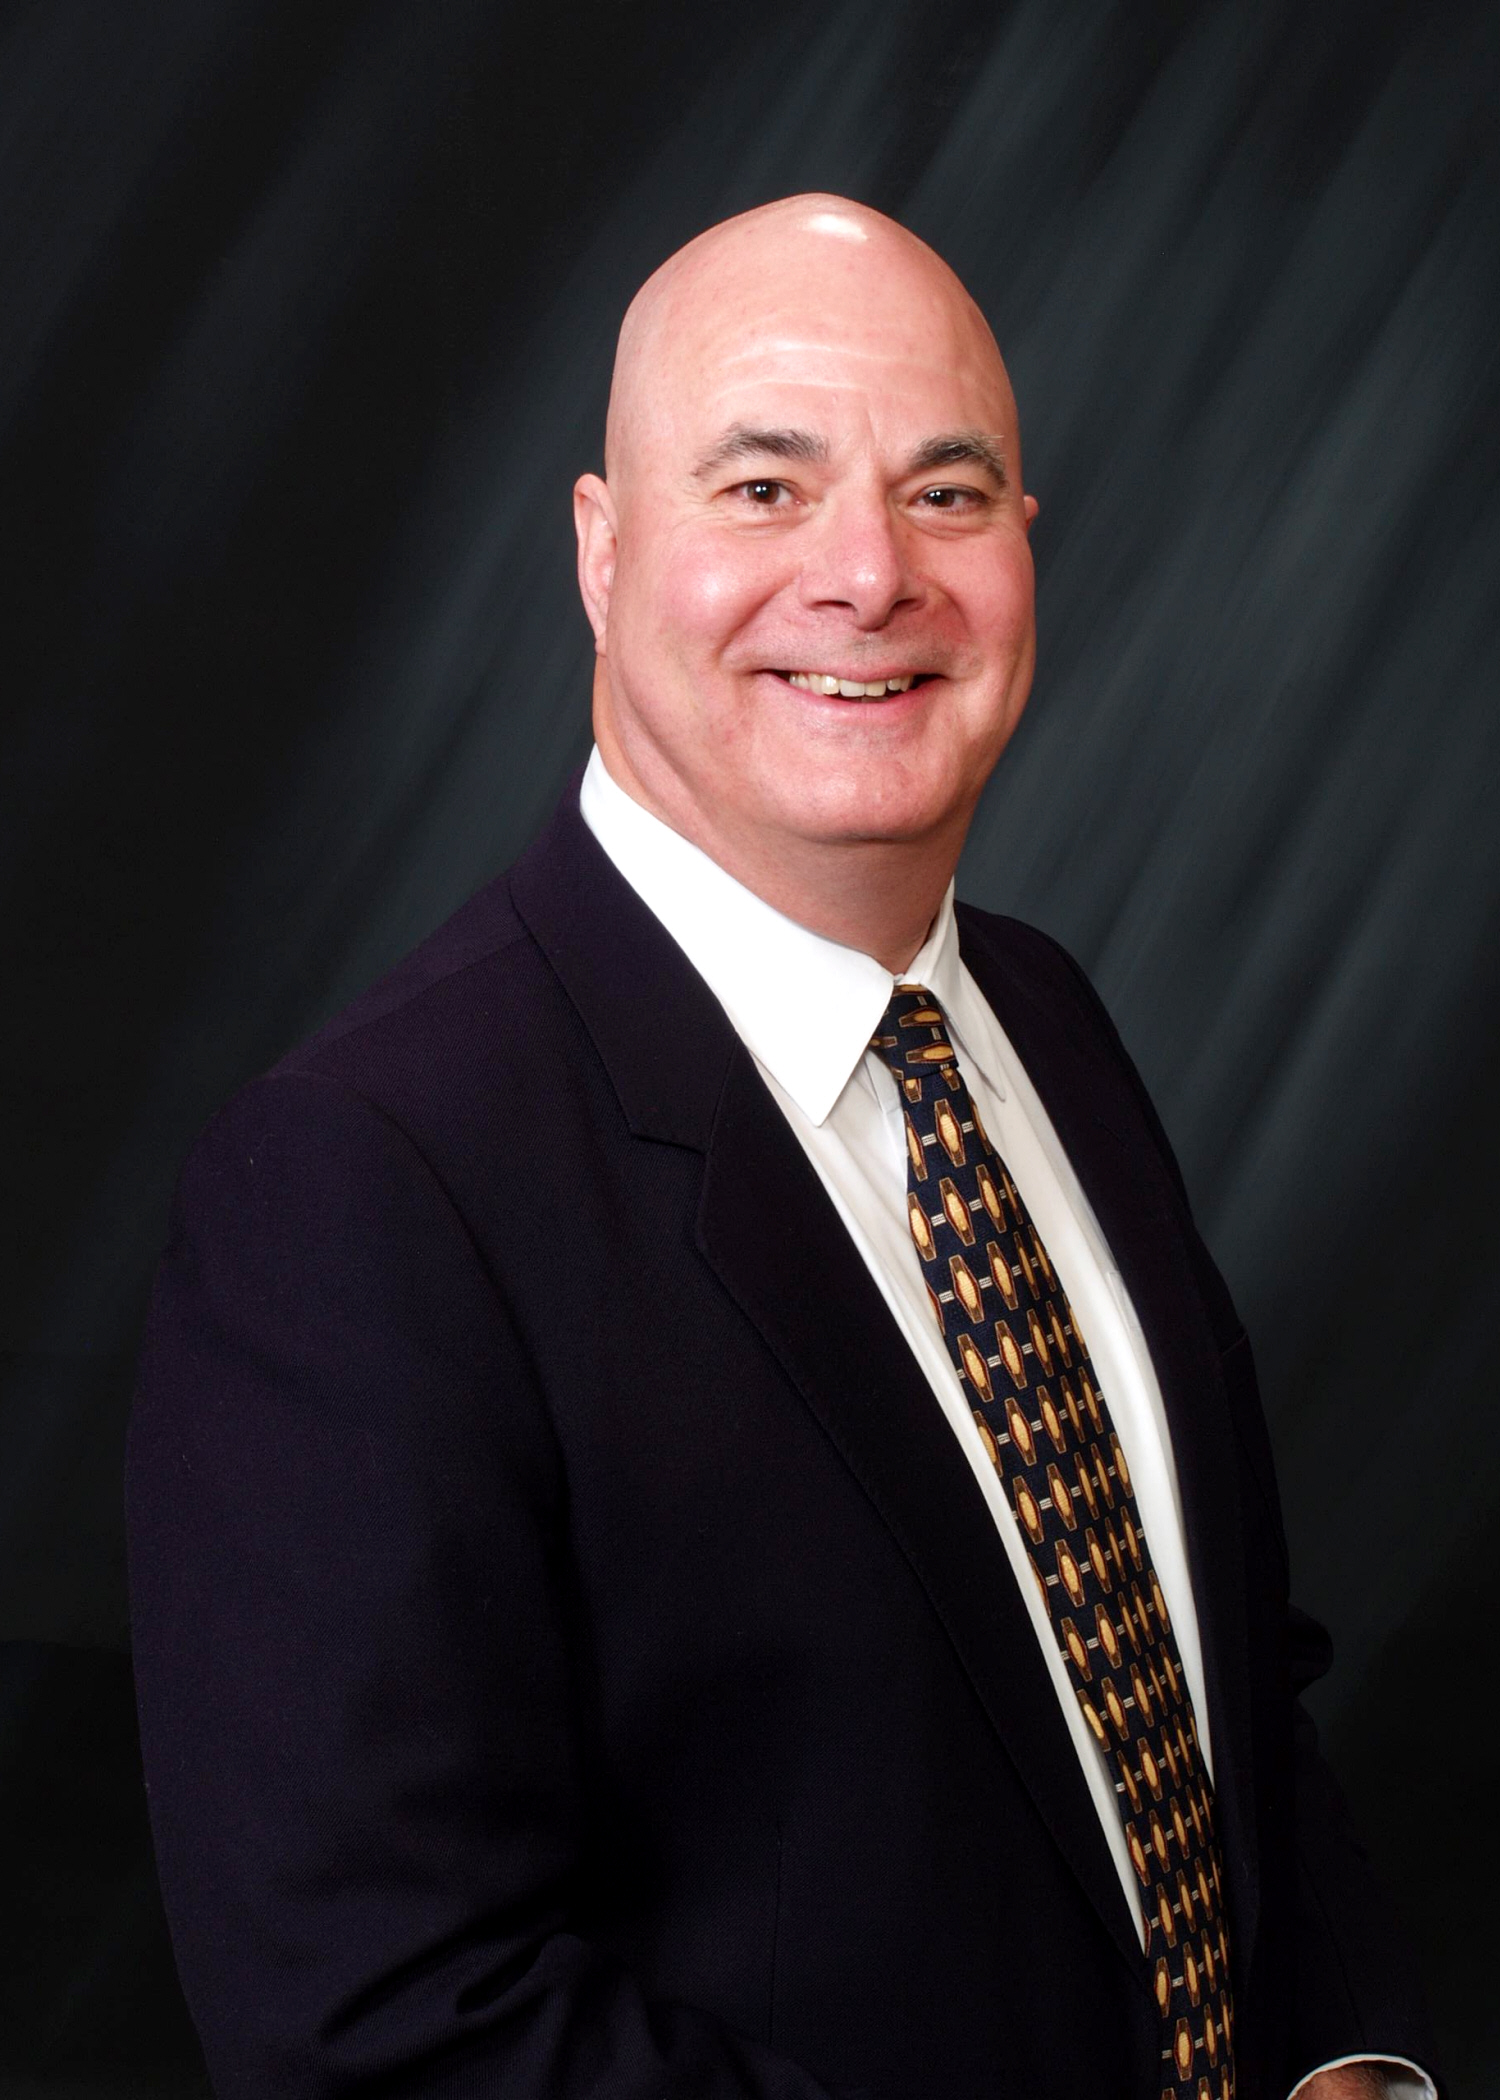 Steve Pontiff, financial advisor Sugar Land TX